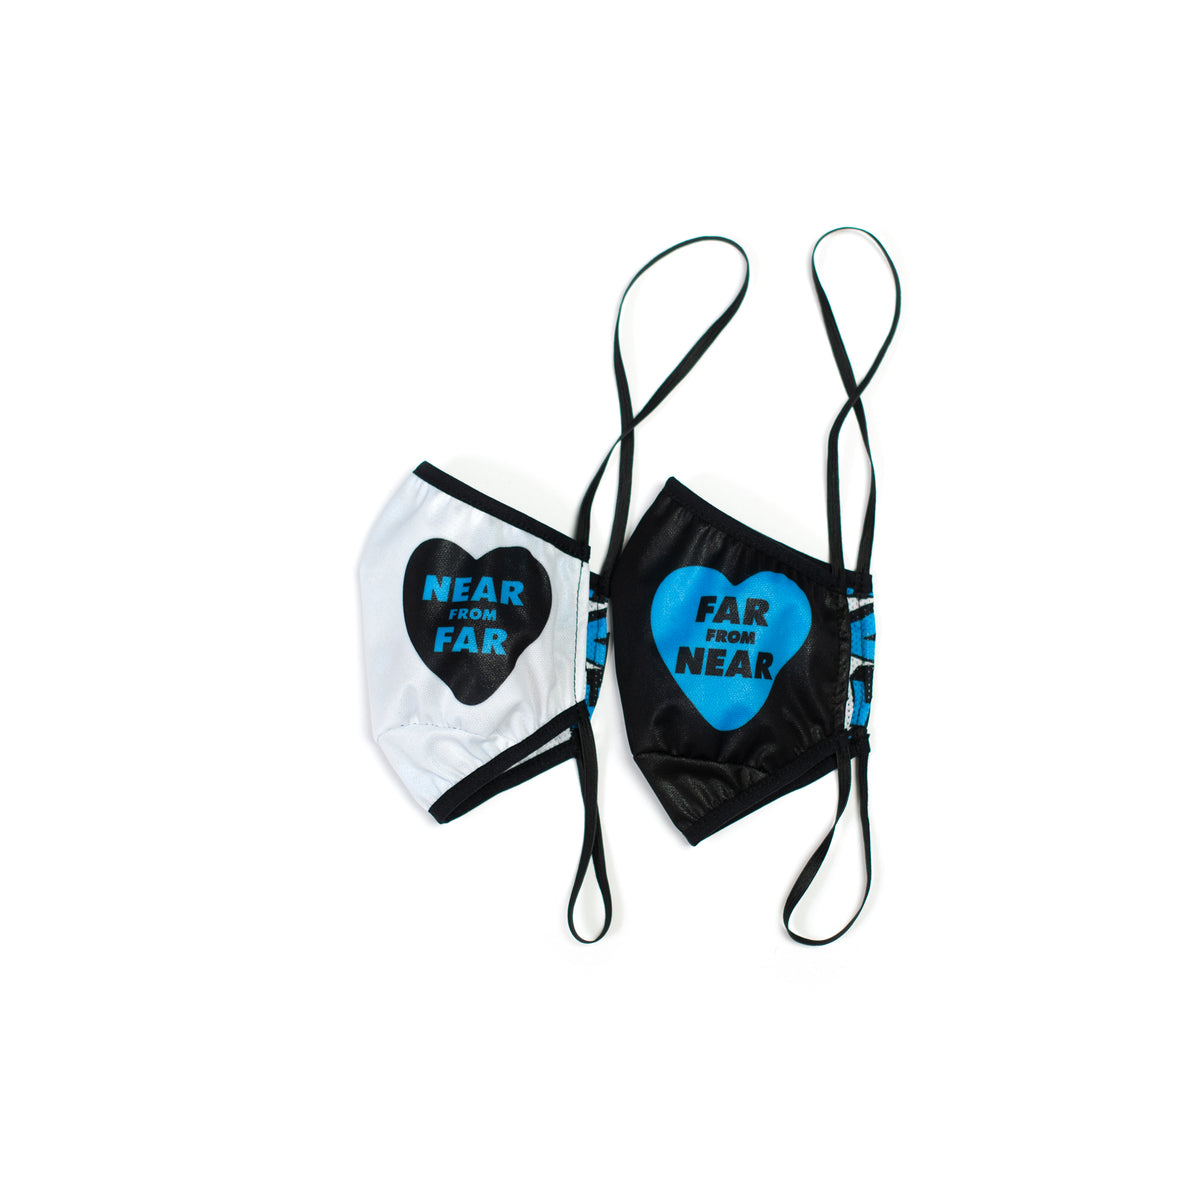 NEAR FROM FAR - 3 LAYER MASK (2 PACK)